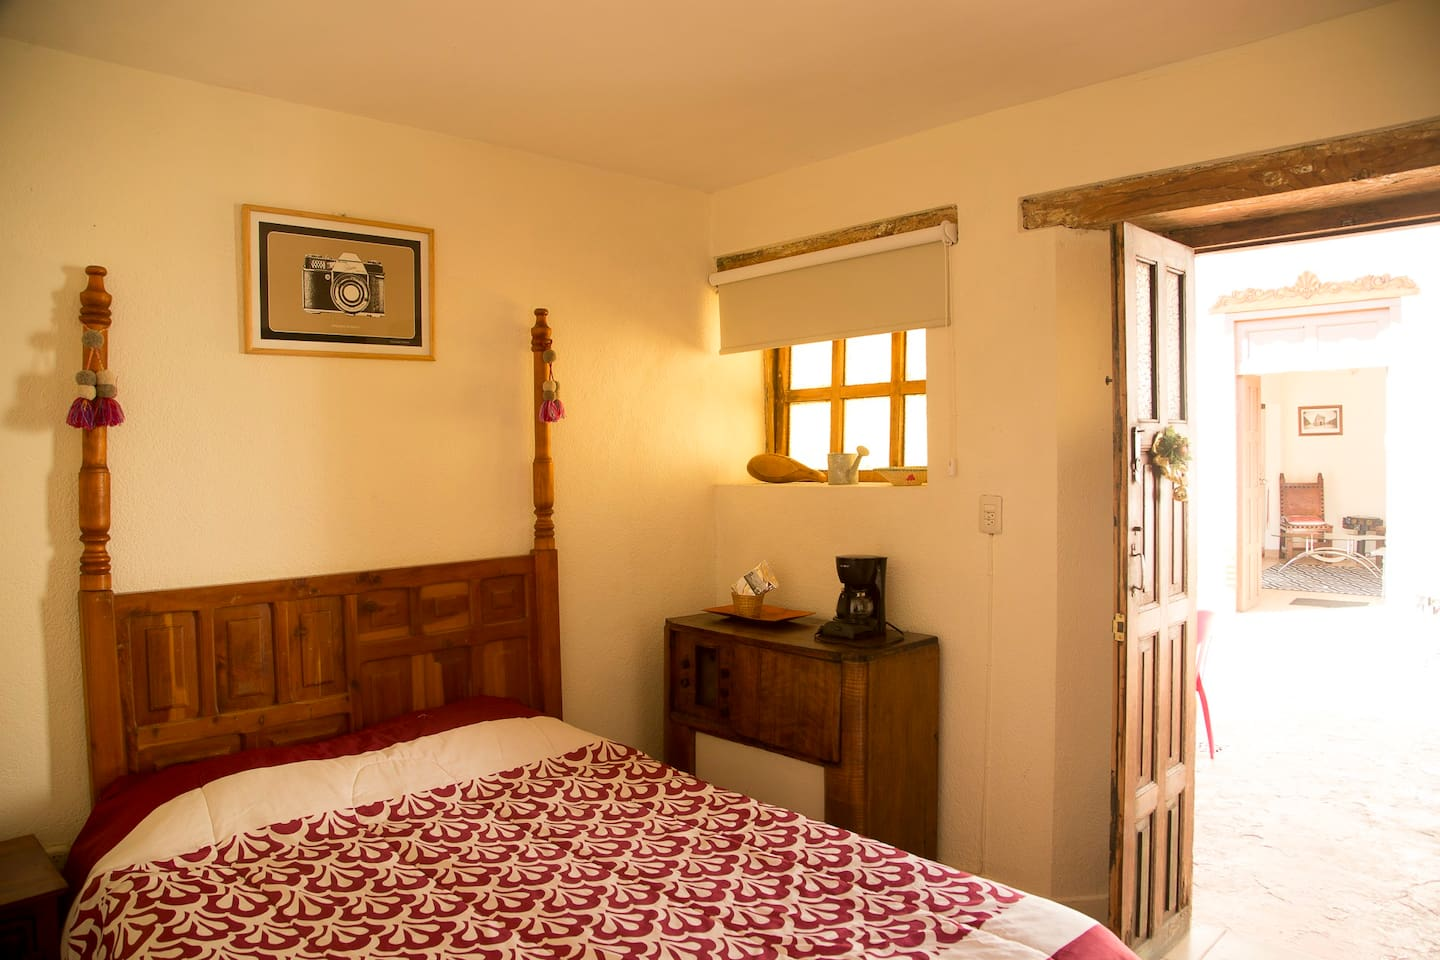 Habitaci N Doble En Casa Albertina Guest Suites For Rent In San  # Muebles Mihogar San Jose